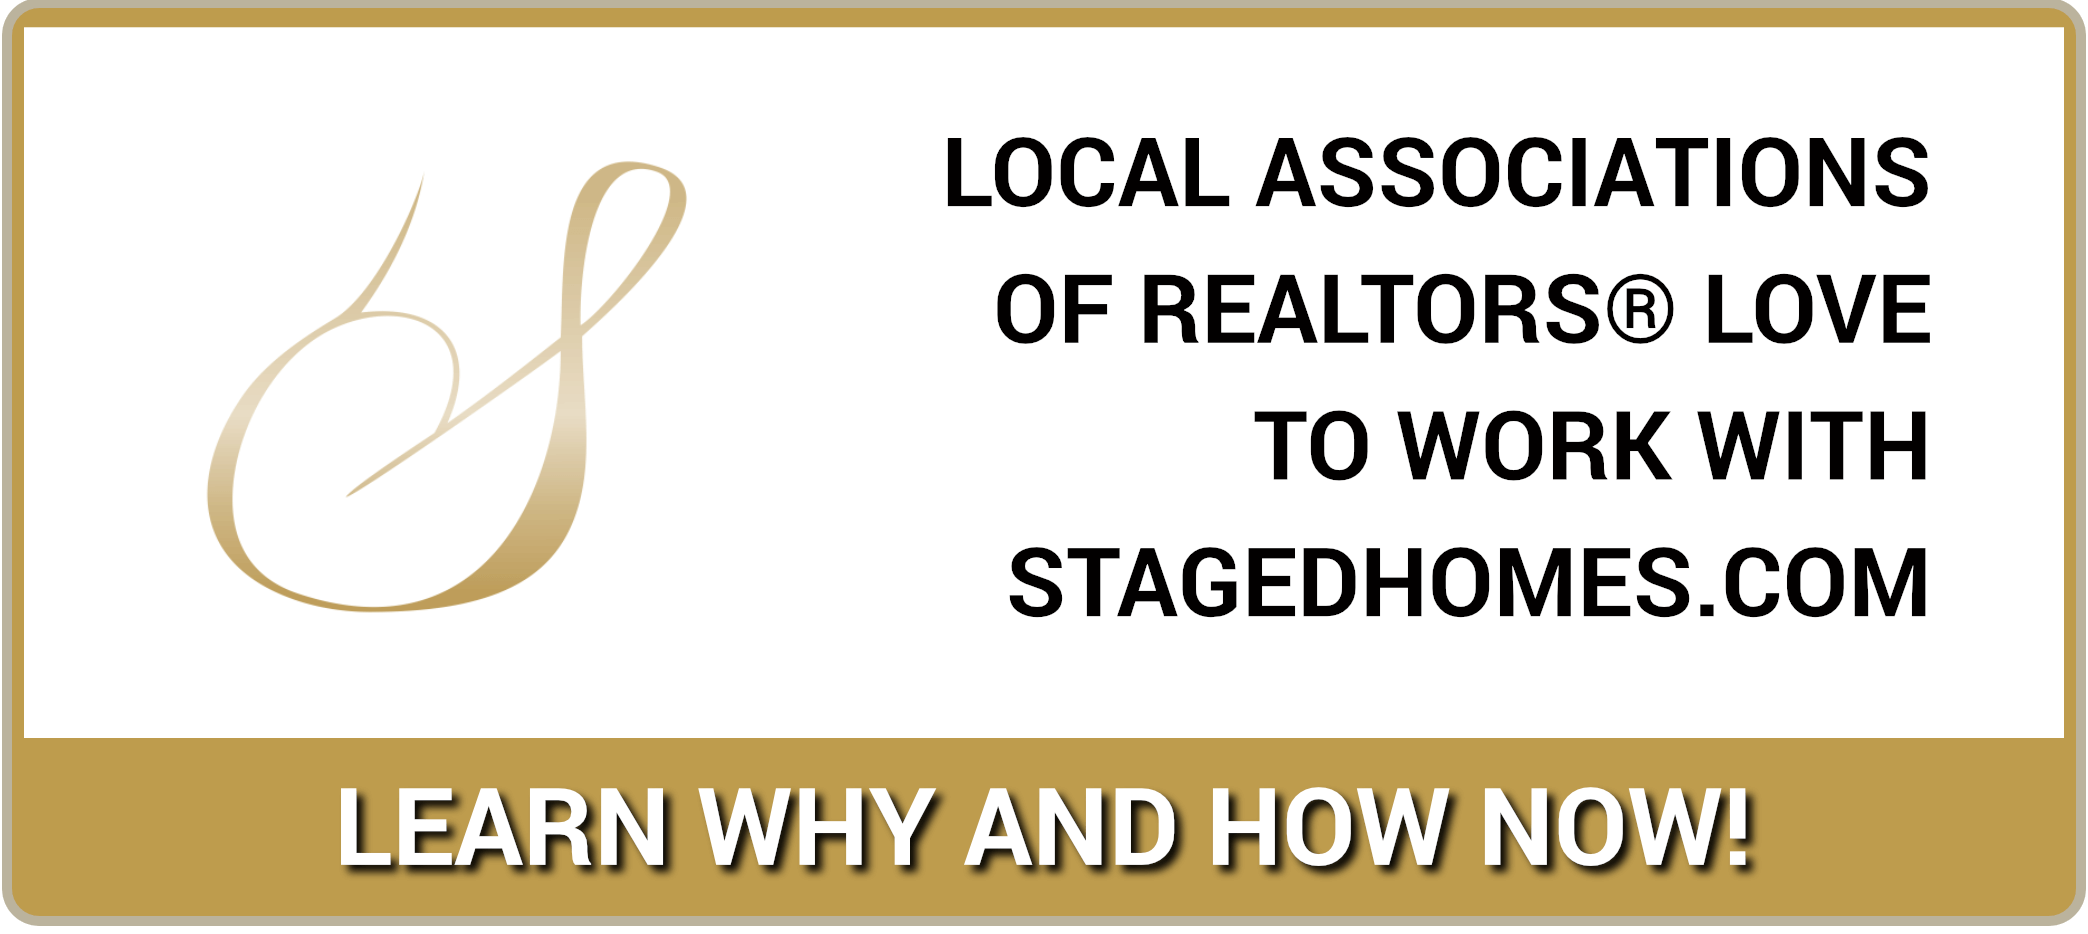 Local Associations of Realtors